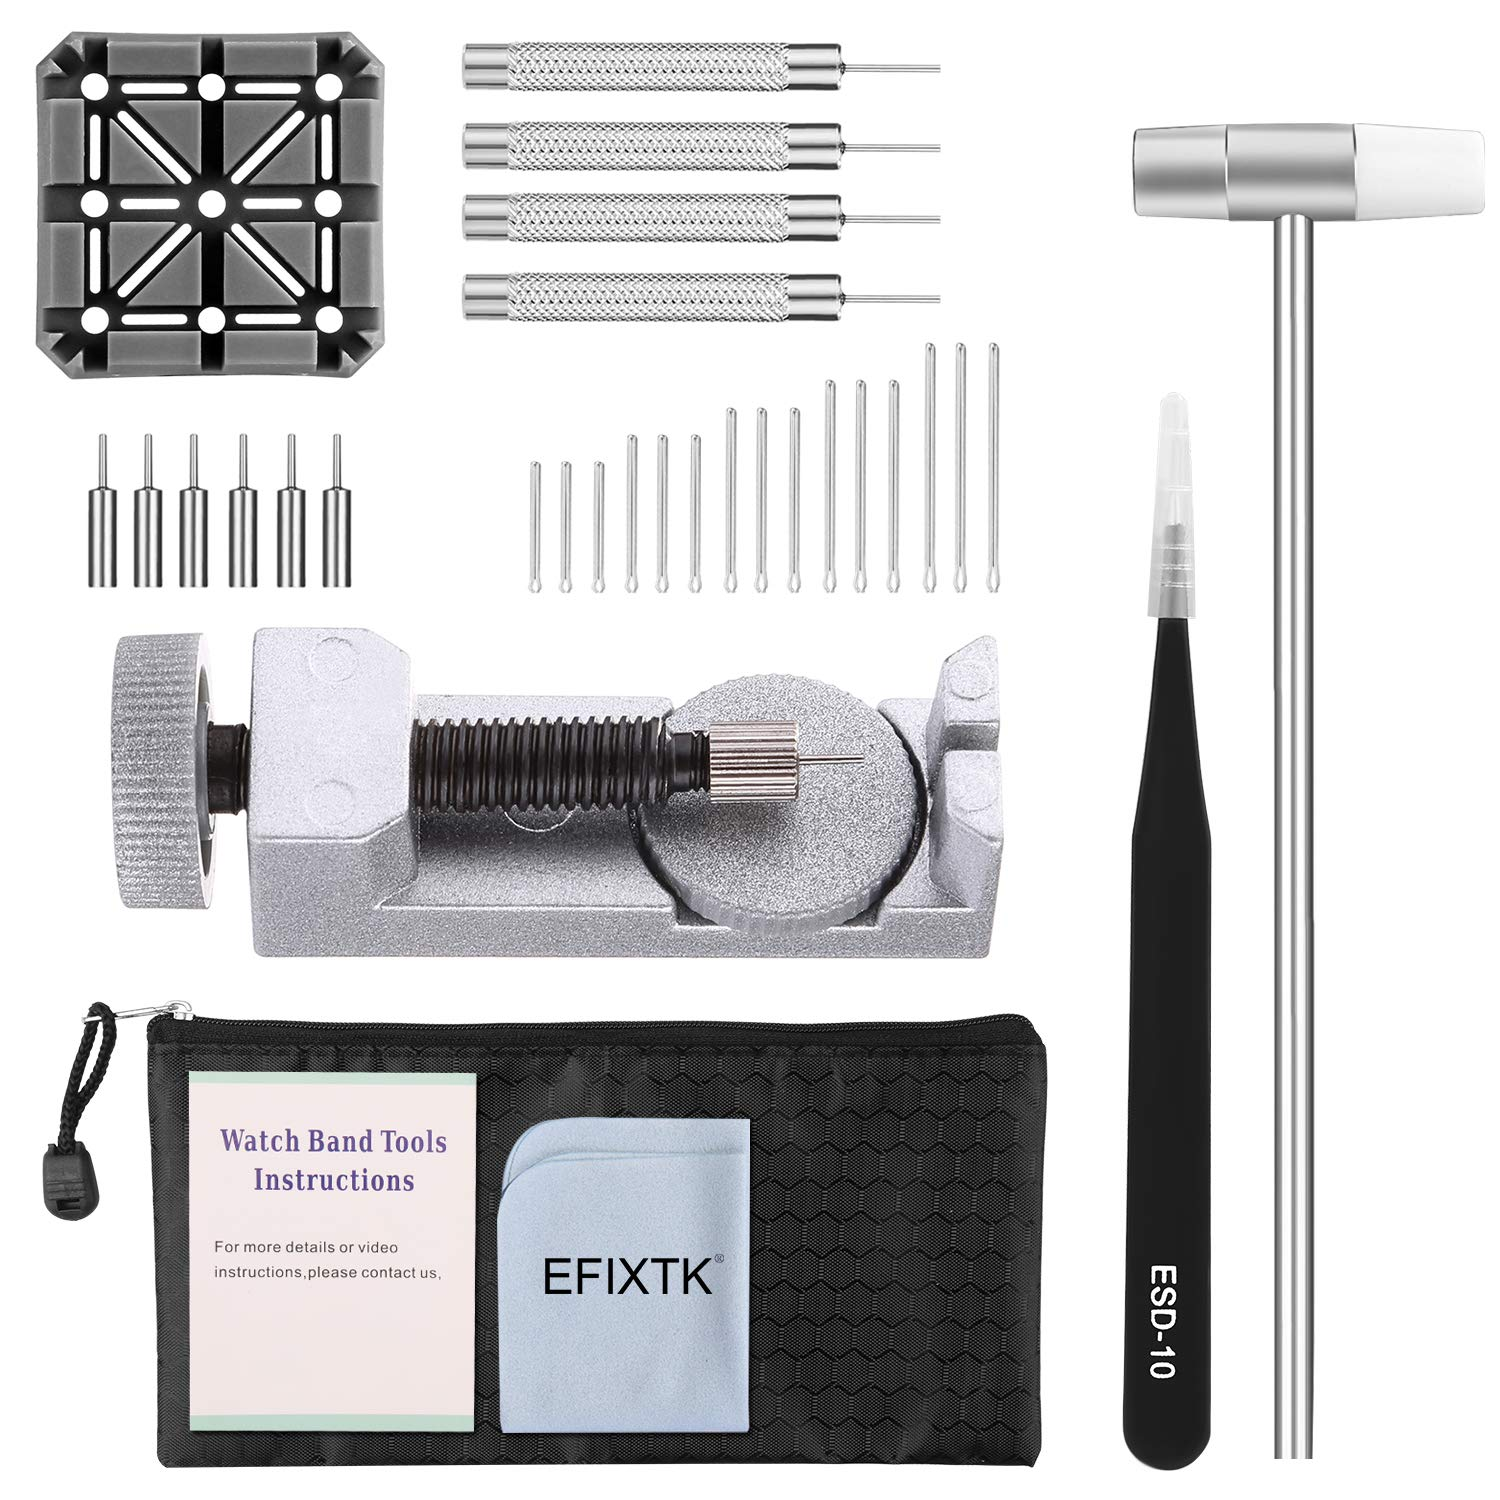 Watch Band Strap Link Pins Remover Repair Tool,24 in 1 Kit with 3 Extra Tips Replacement,20PCS Cotter Pin,1PCS Holder,1PCS Head Hammer,1PCS Tweezers,1PCS Glasses Cloth